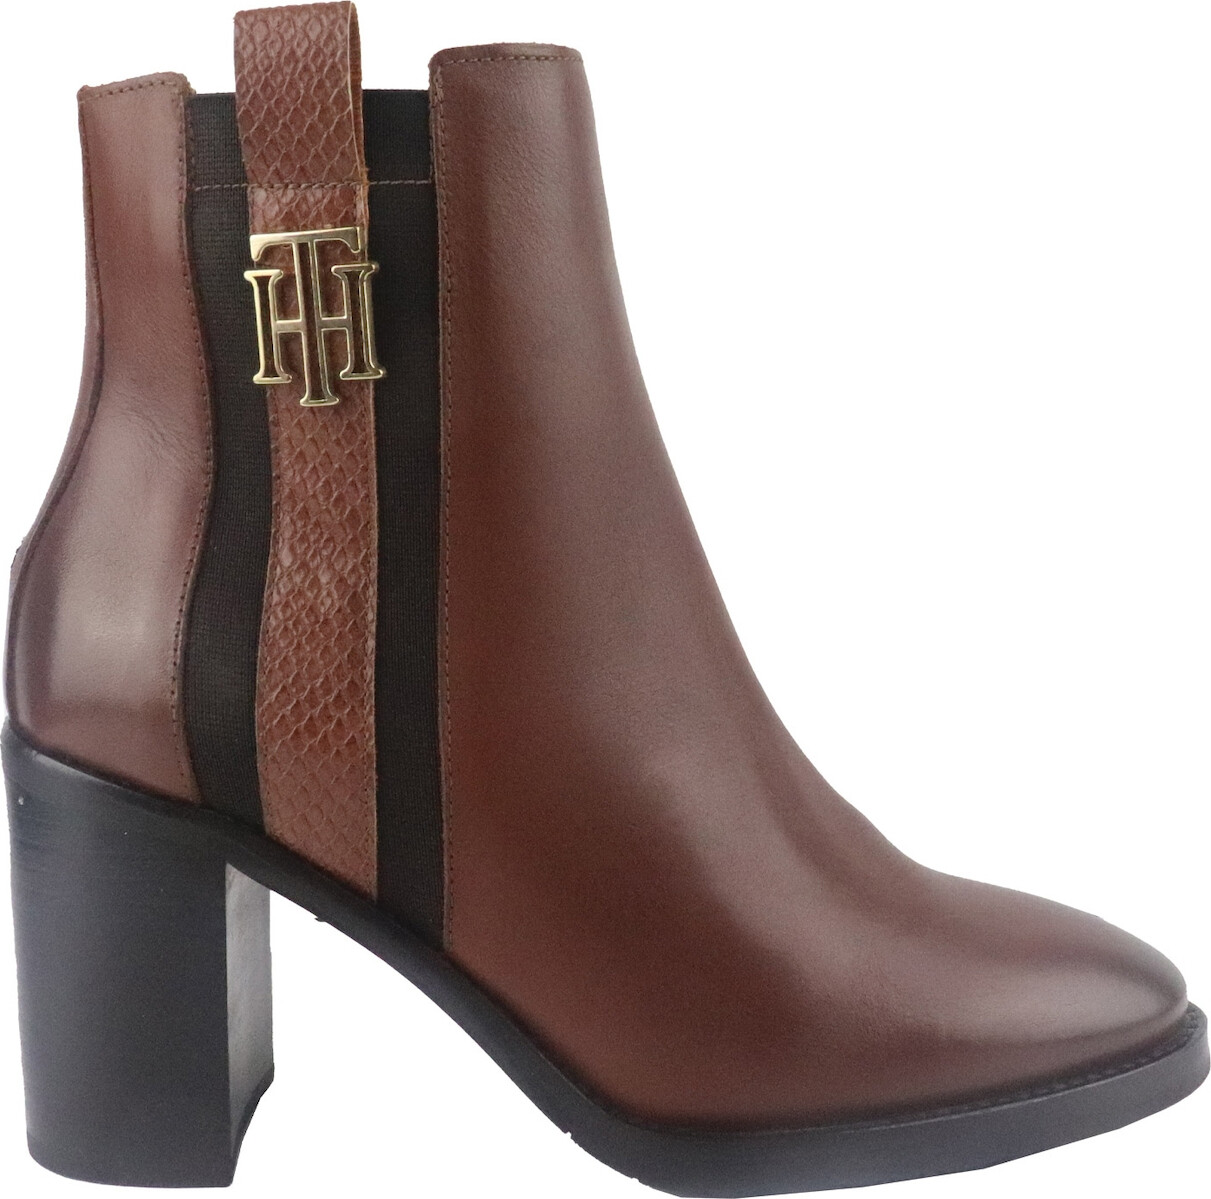 Tommy Hilfiger Monogram Plaque High Heeled Boots